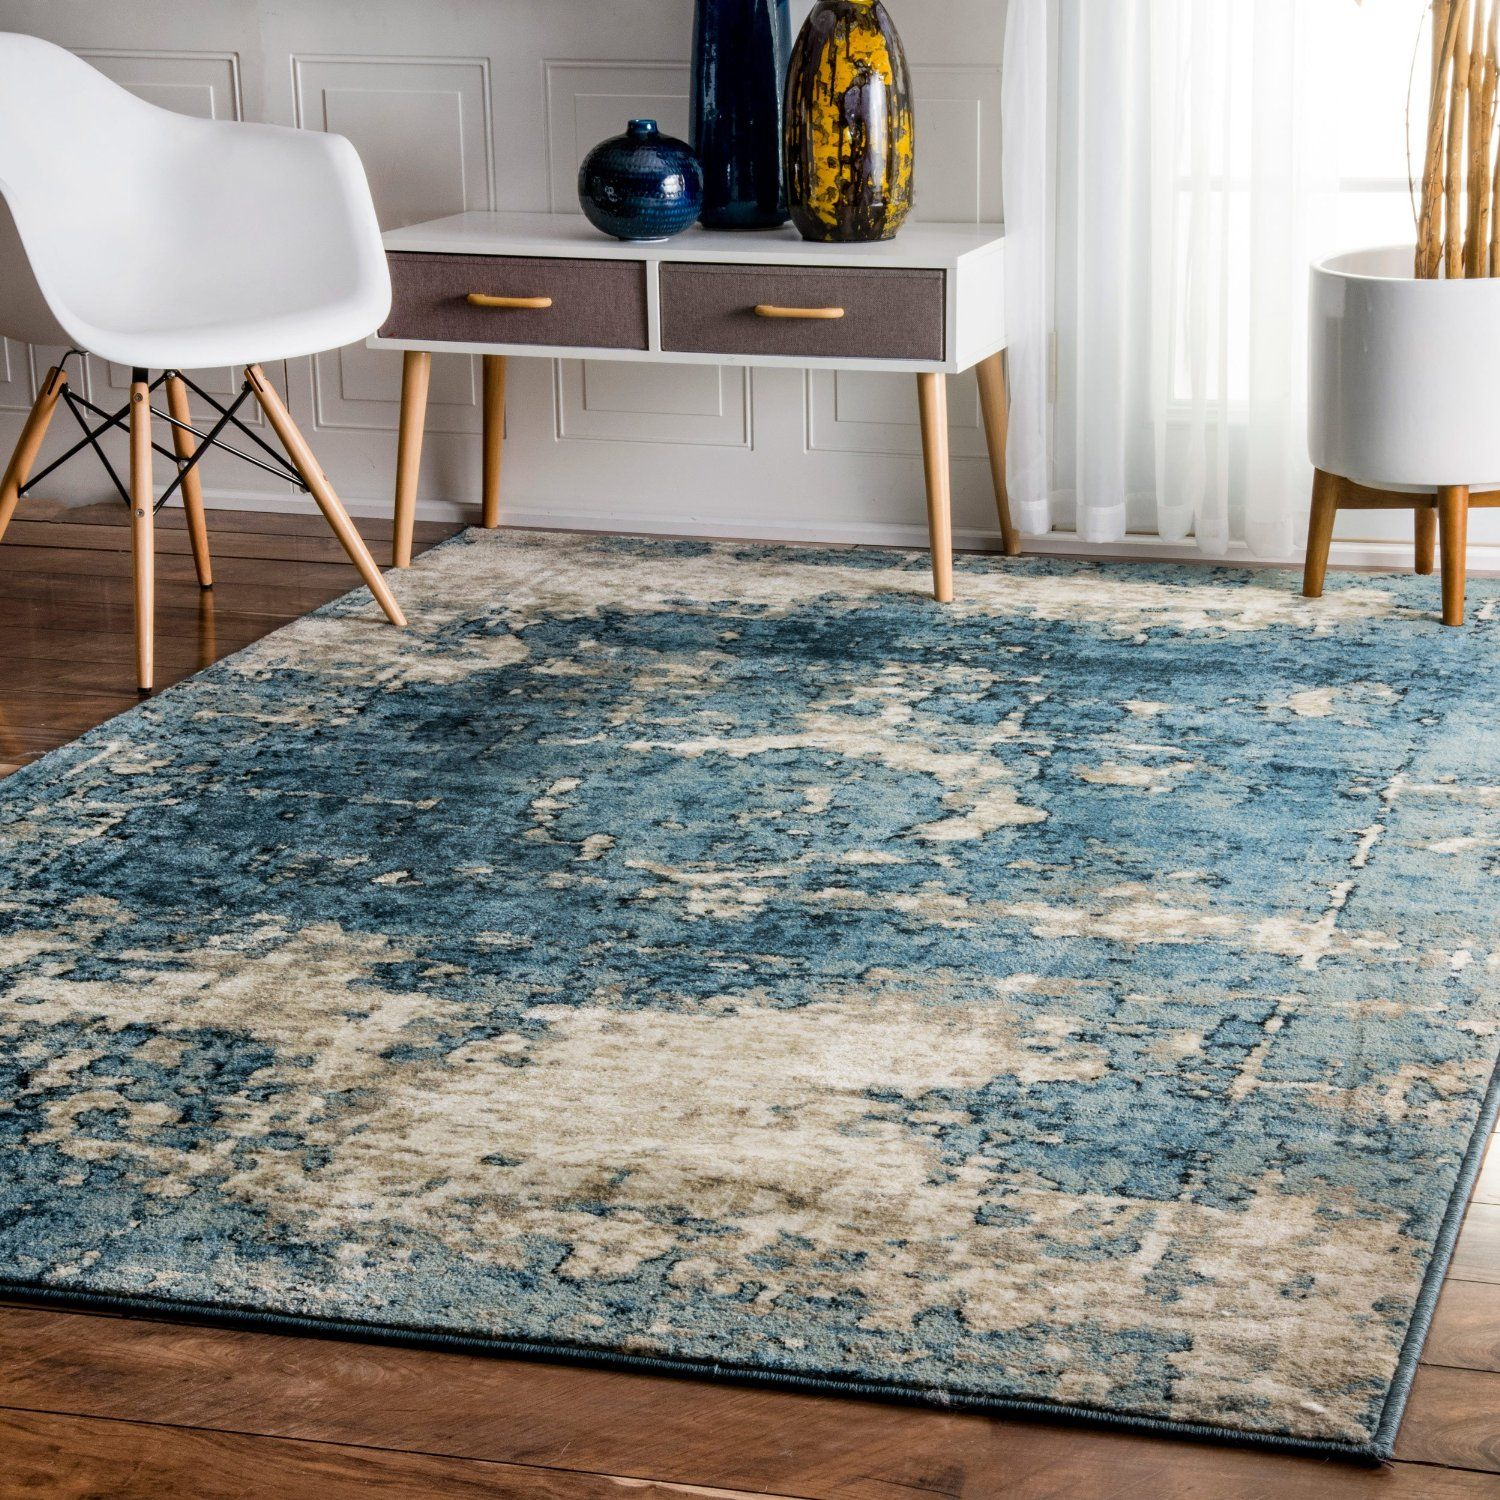 Traditional Vintage Inspired Overdyed Distressed Fancy Blue Area Rugs 5 Feet 3 Inches By 7